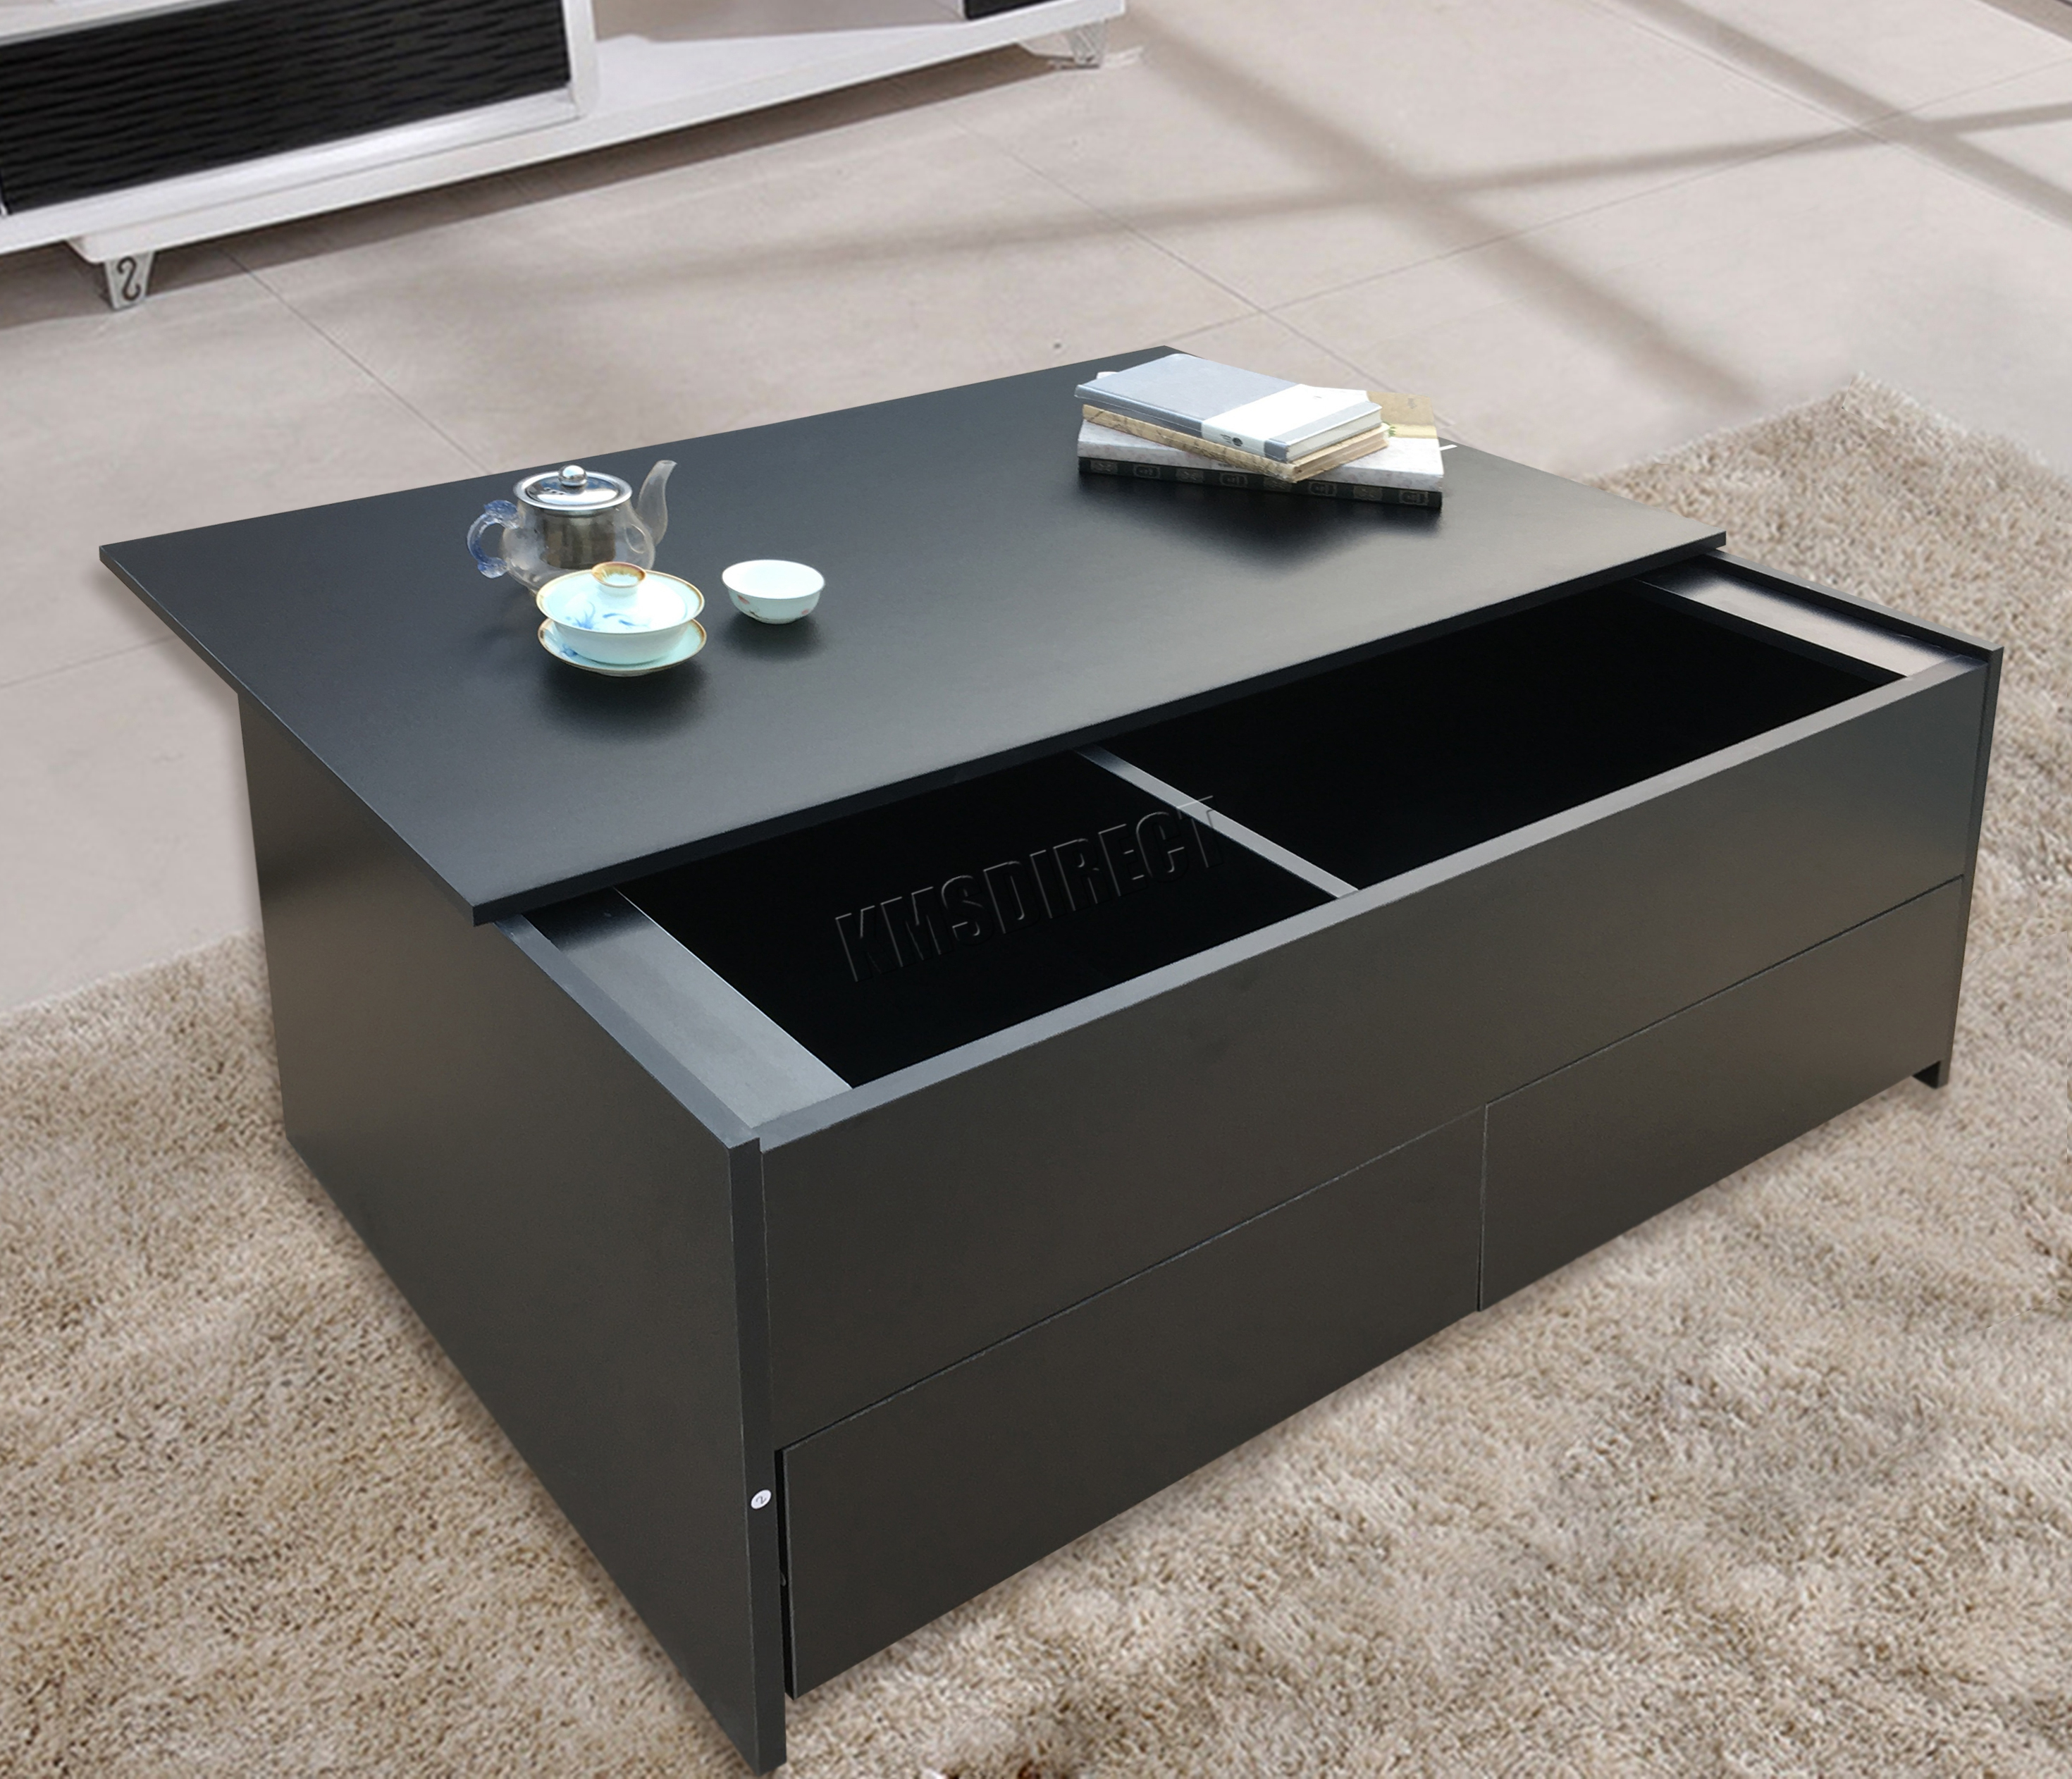 FoxHunter Slide Top Coffee Table Trunk With Storage Box